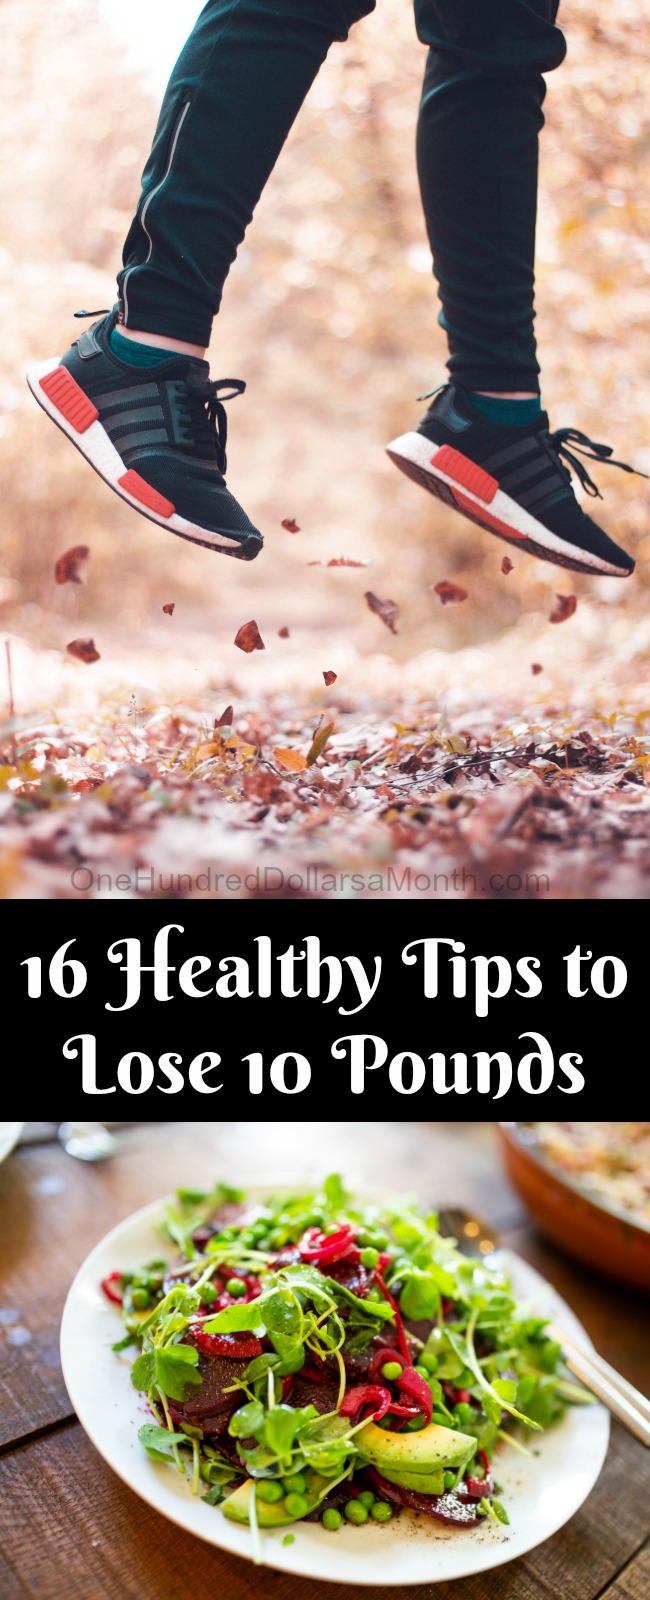 16 Healthy Tips to Lose 10 Pounds